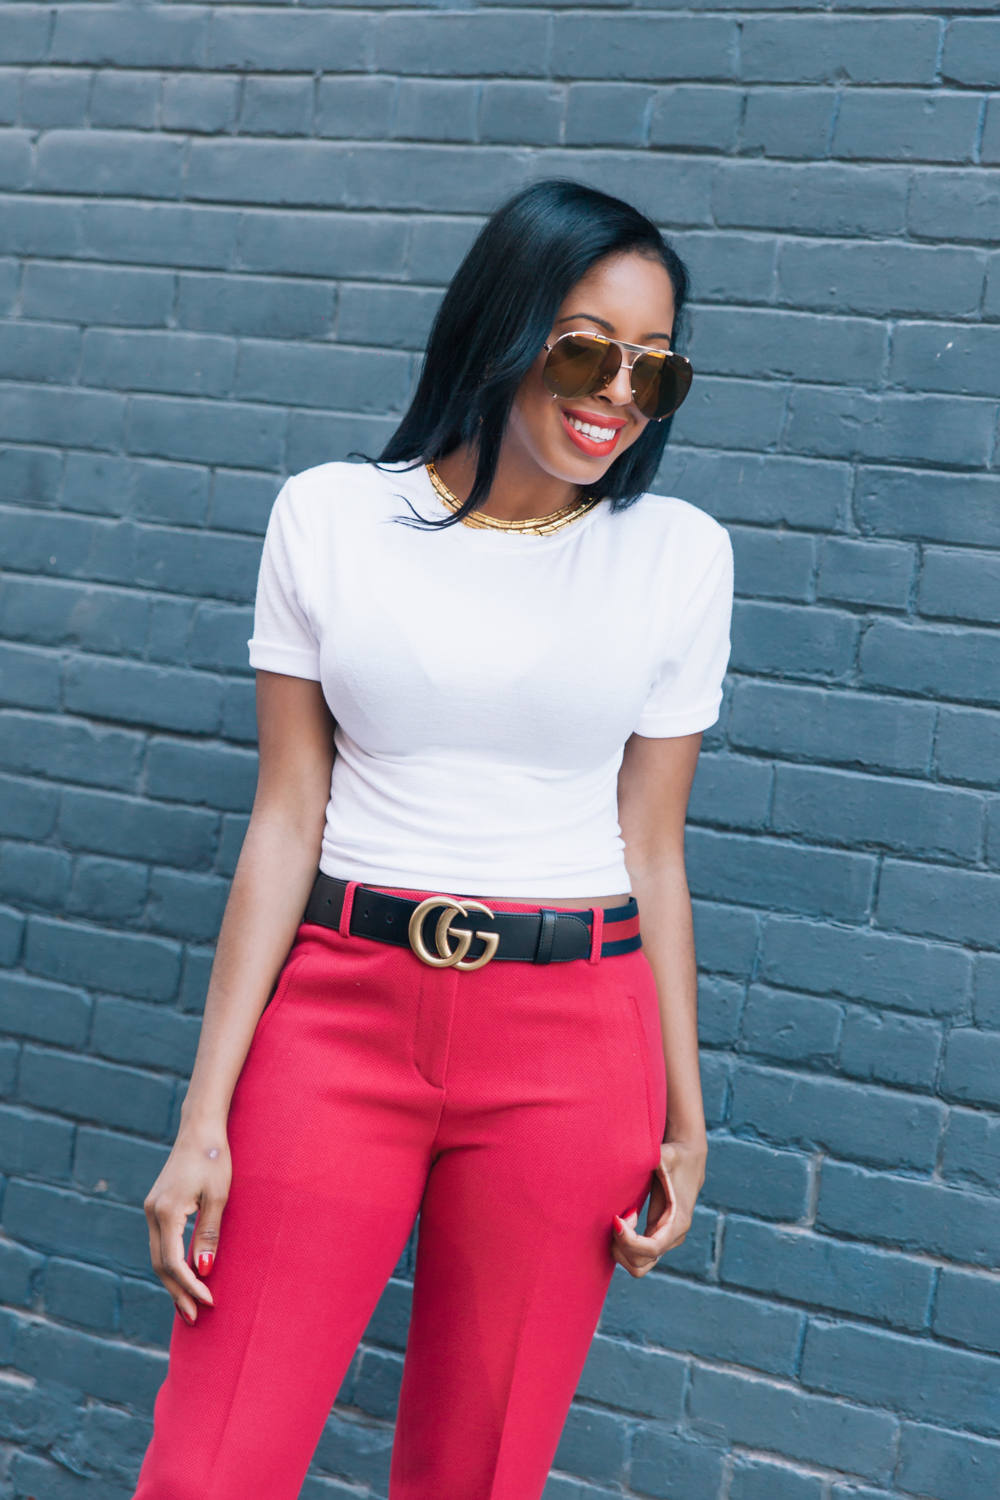 Gucci Marmont Belt Outfit - Simply Shantel